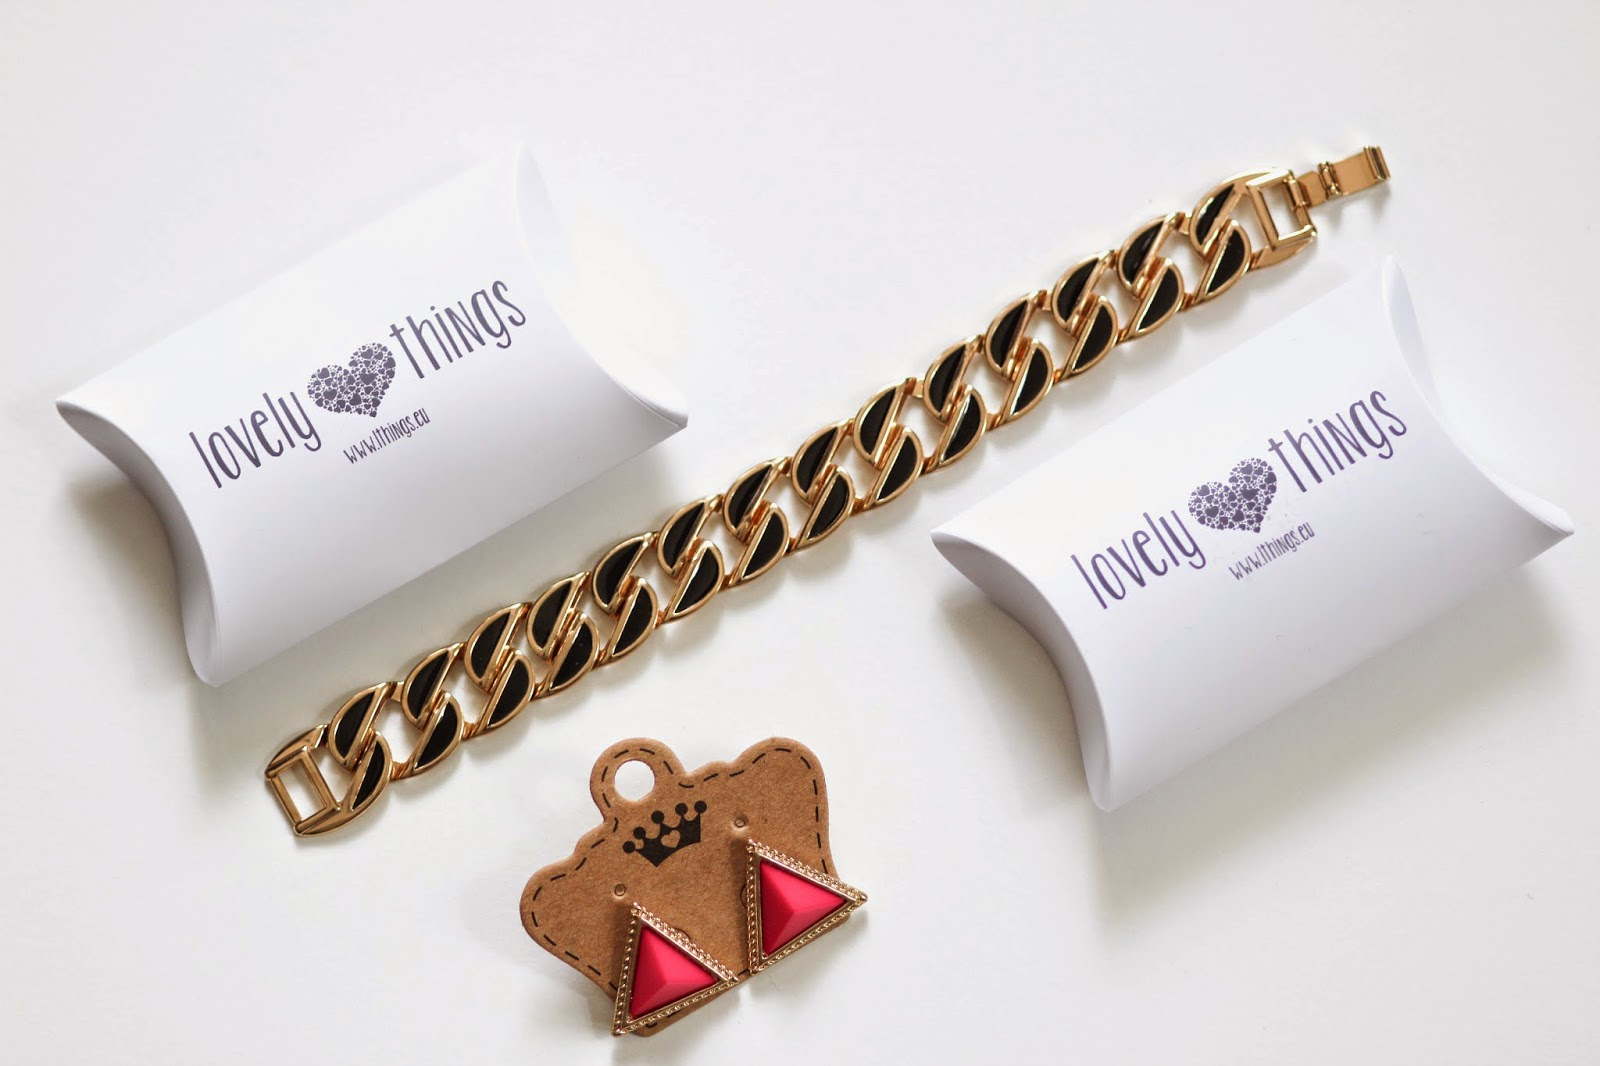 ACCESSOIRES: EARRINGS & BRACELET BY LOVELY THINGS PRIZMAHFASHION